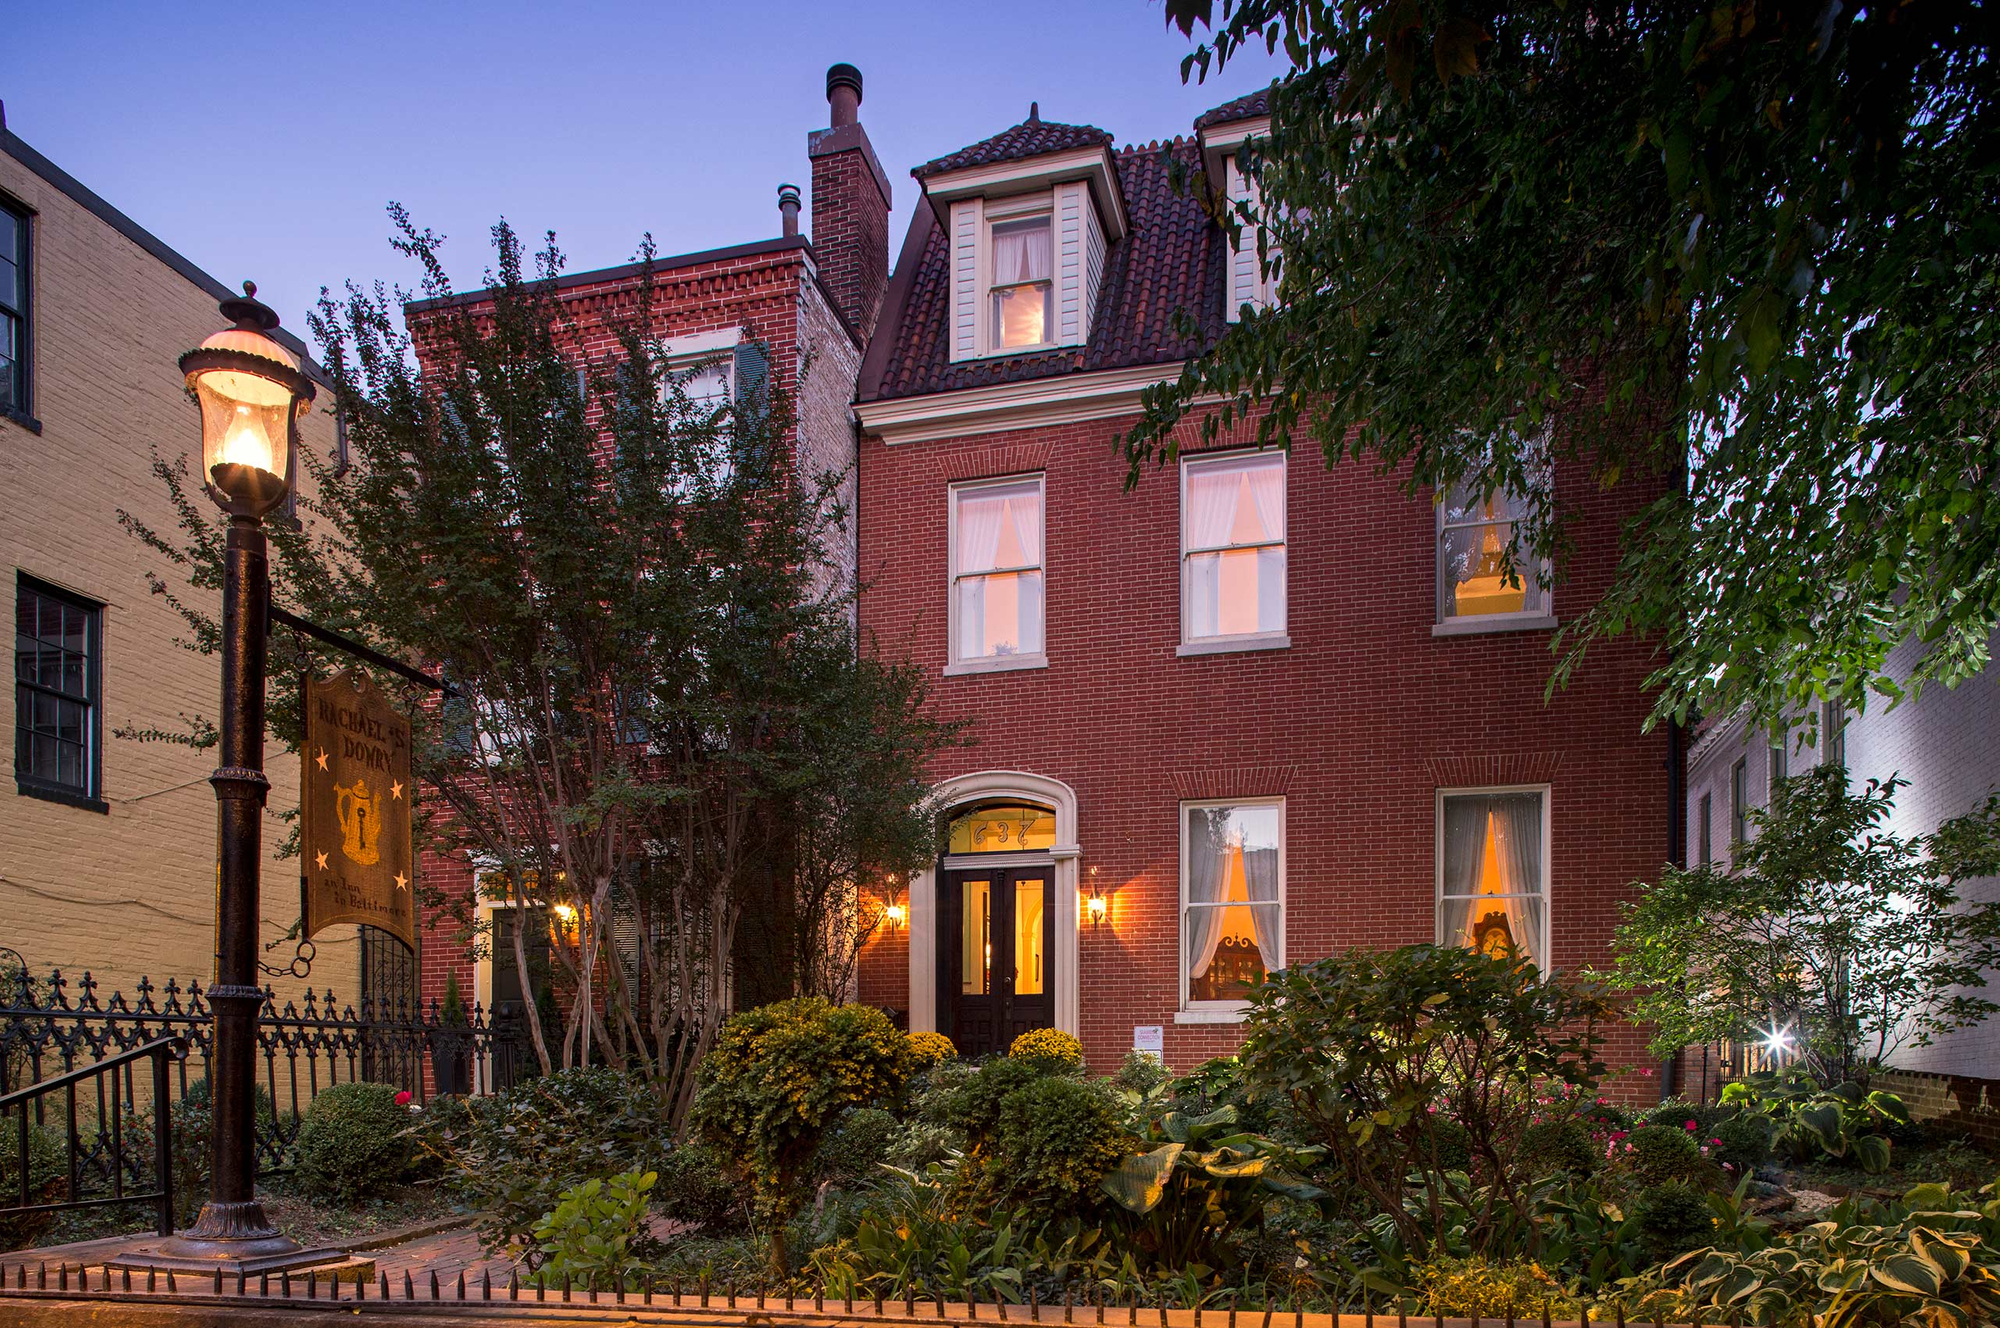 Baltimore-Maryland-Bed-&-Breakfast-Twilight-Exterior.jpg